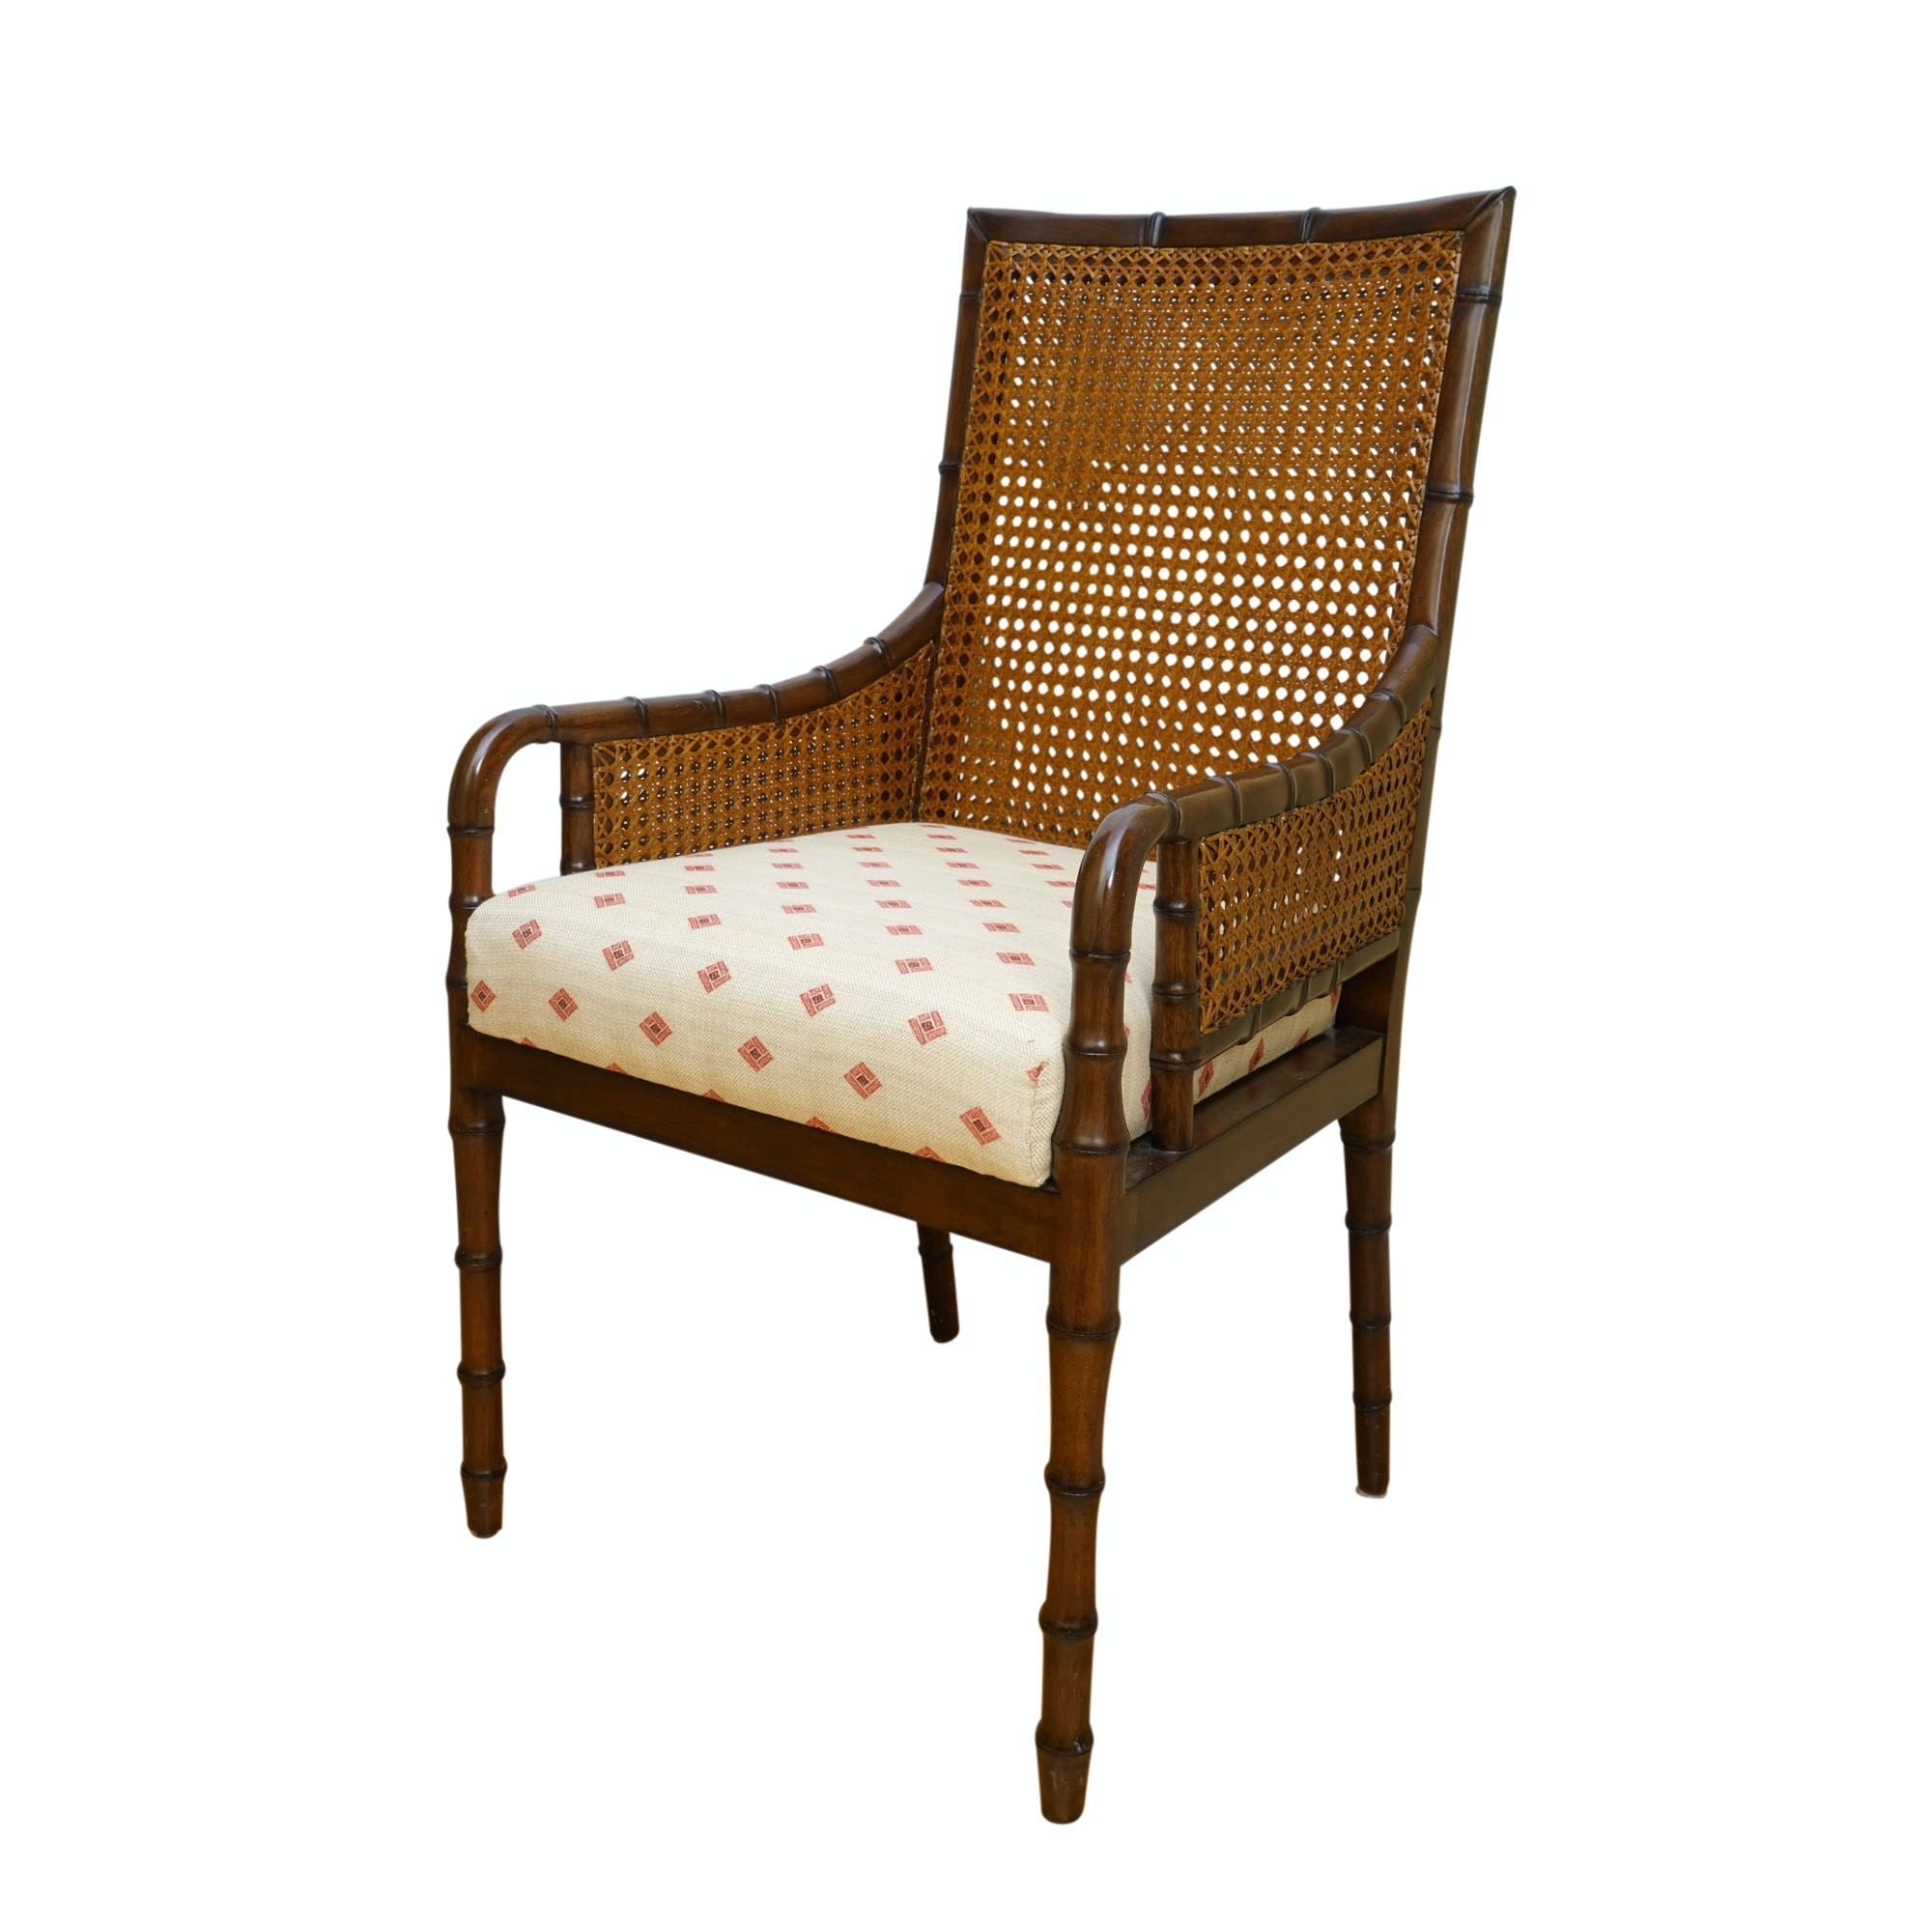 Vintage Caned, Bamboo-Turned Chair by Palecek